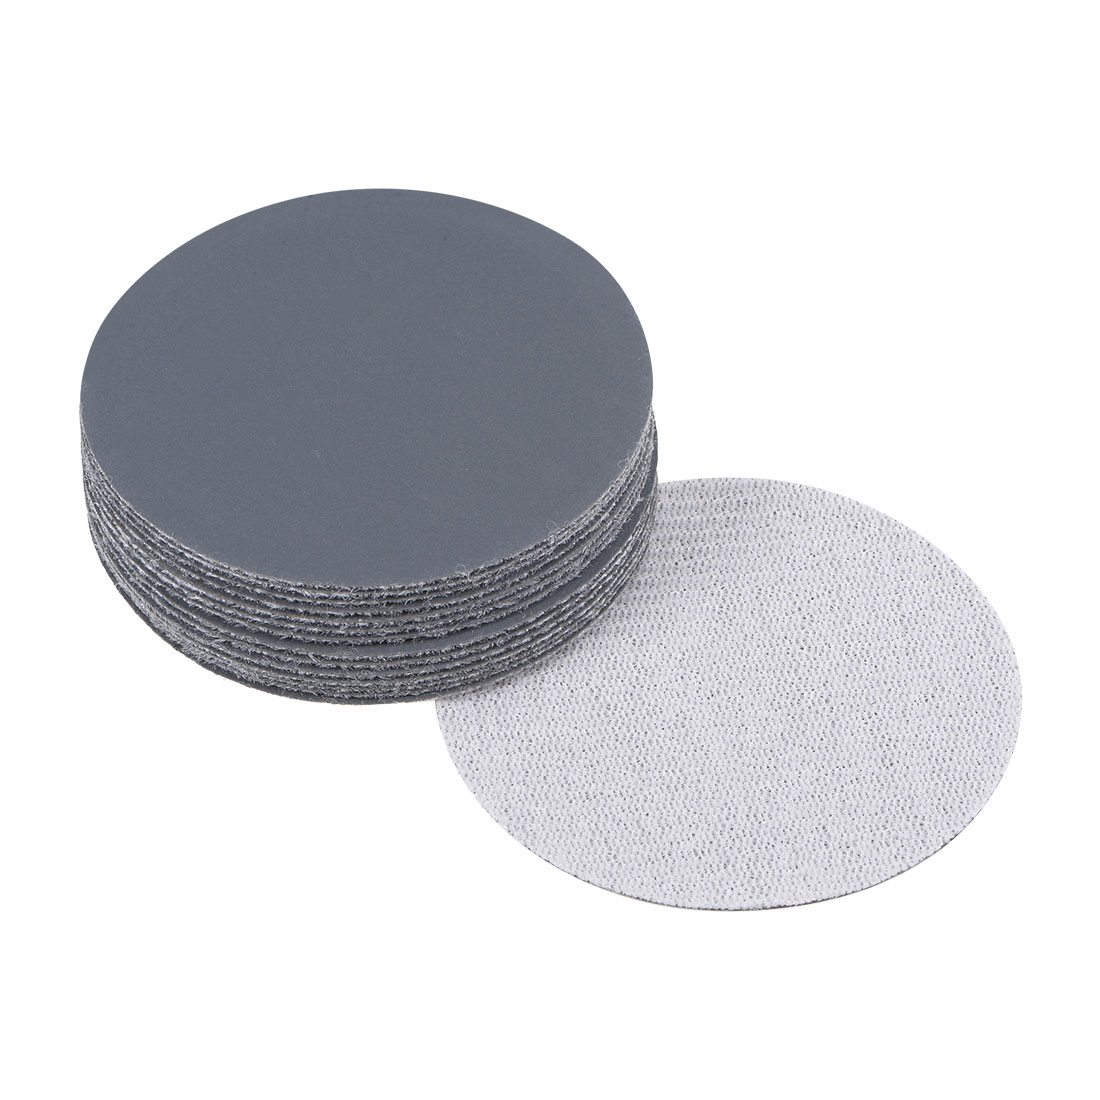 2 inch Wet Dry Discs 2500 Grit Hook and Loop Sanding Disc Silicon Carbide 15pcs